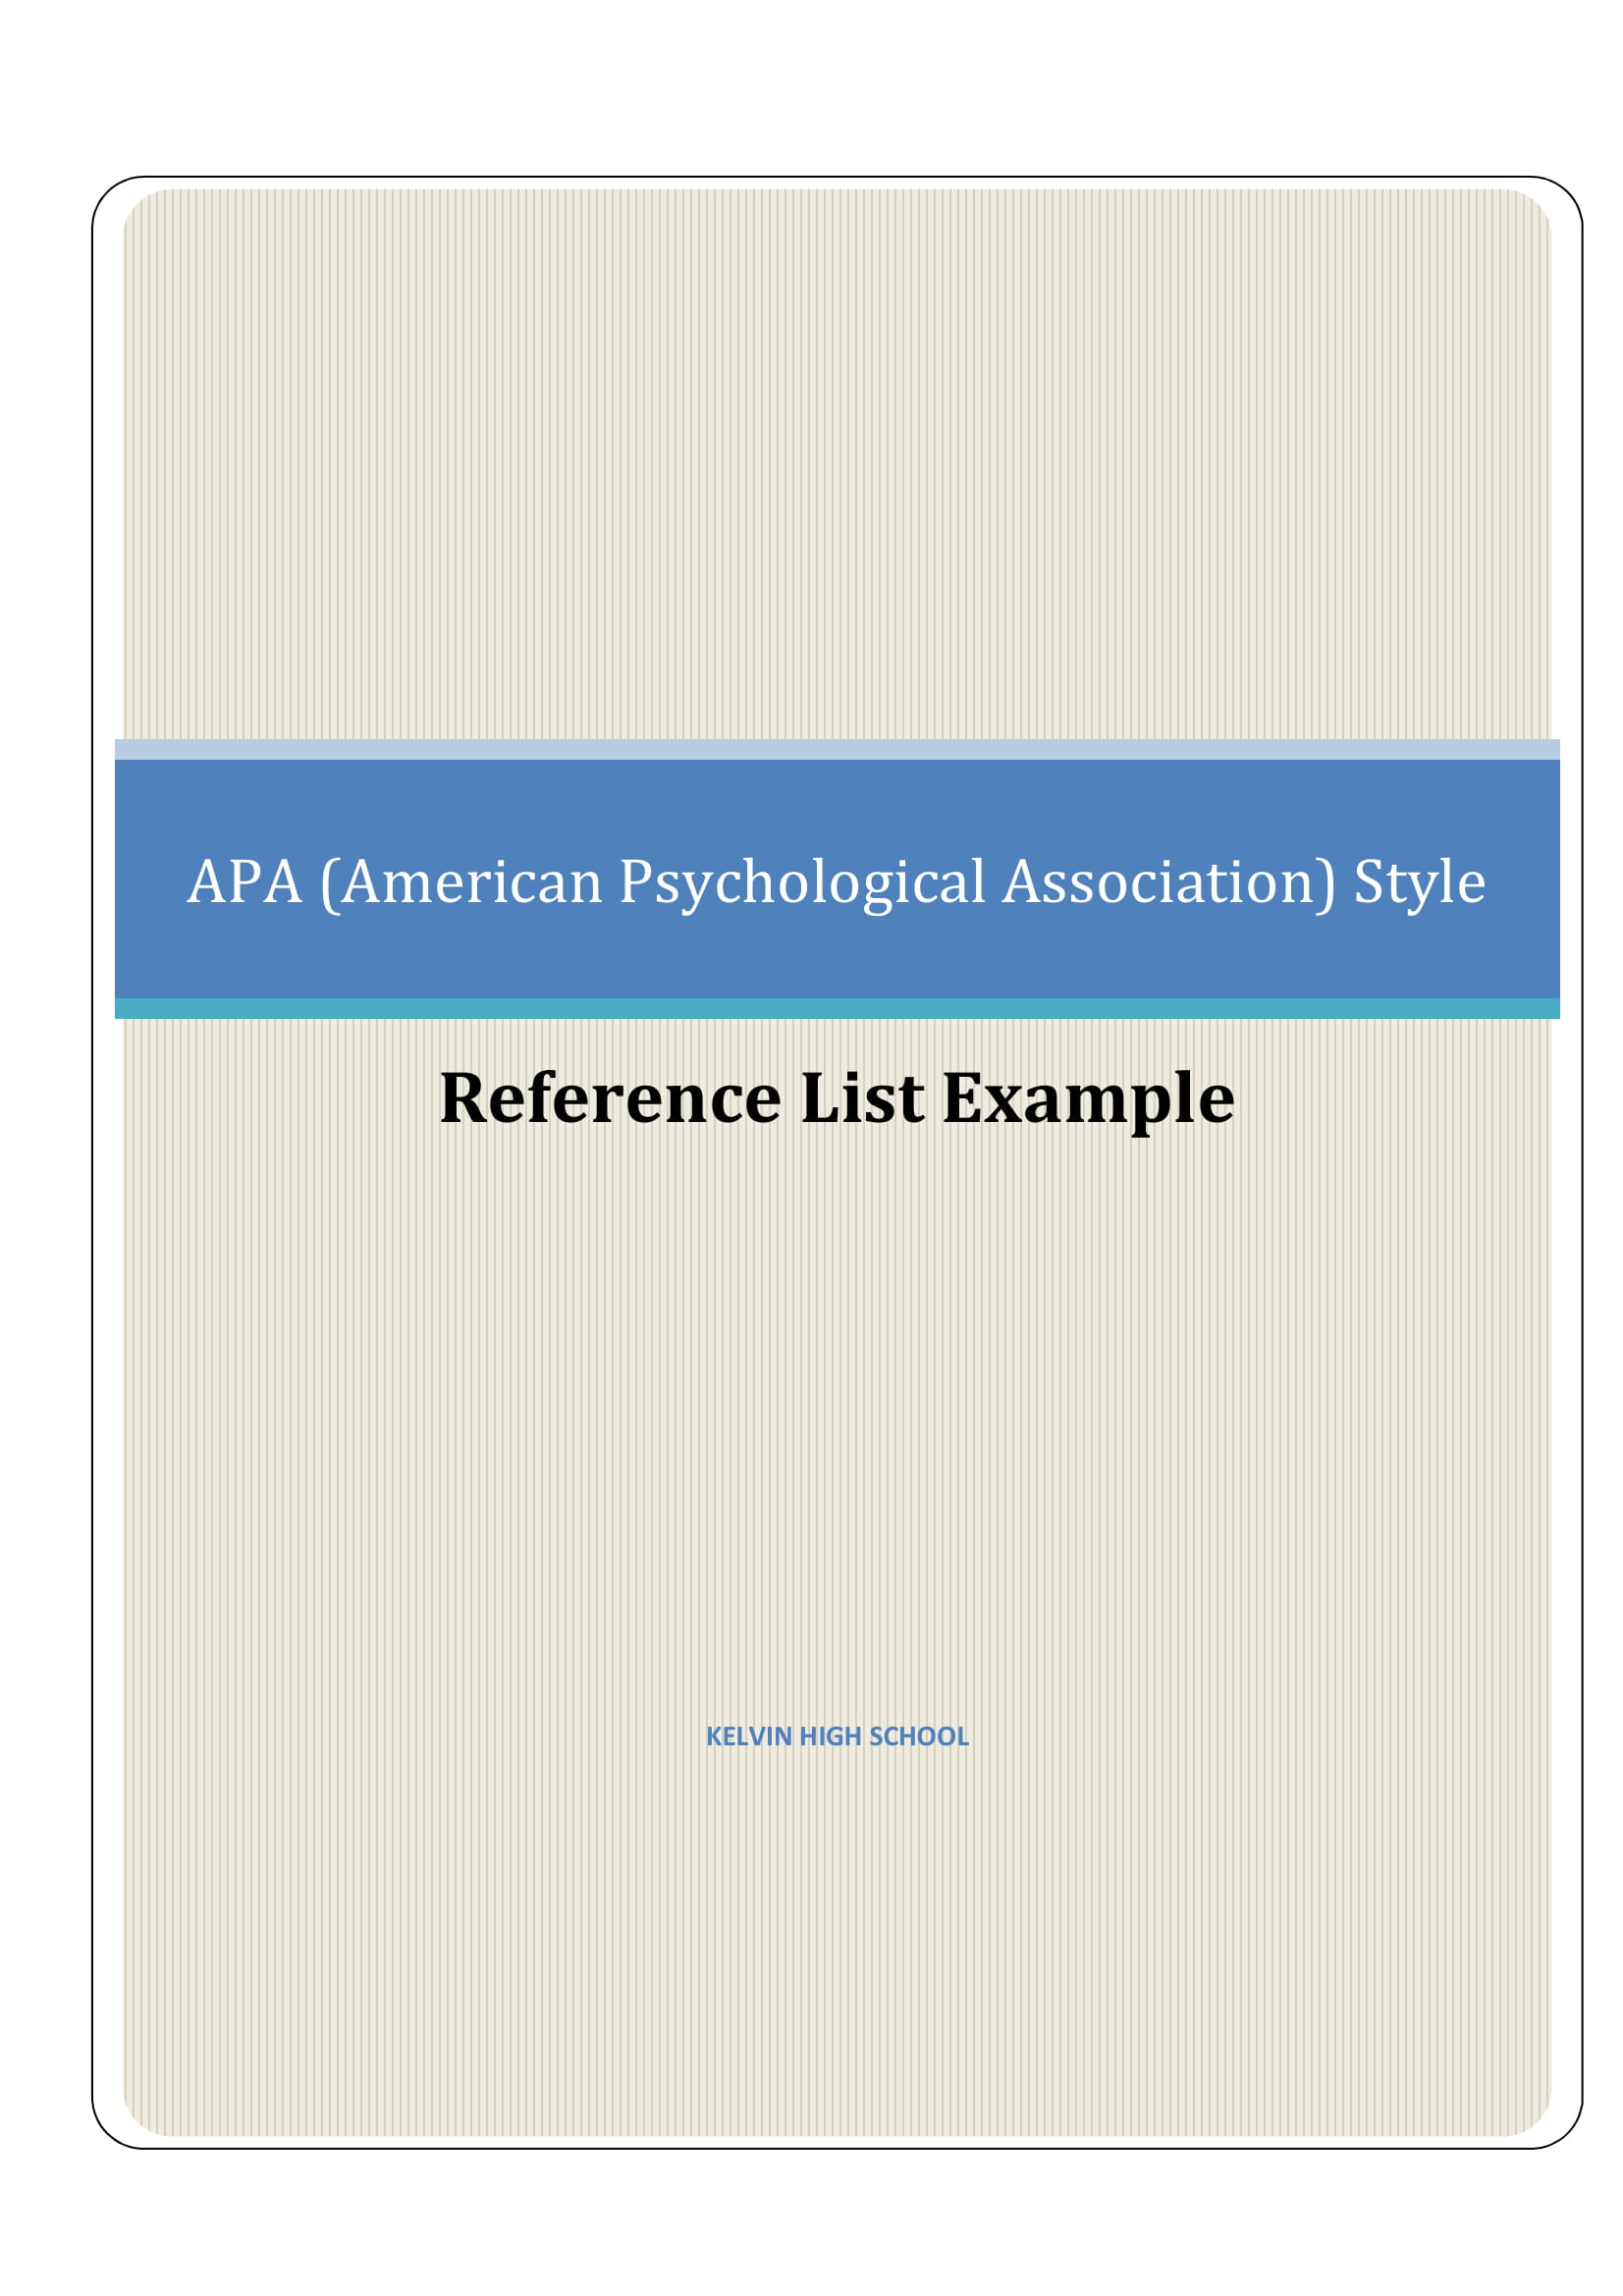 apa referencing guide and reference list example